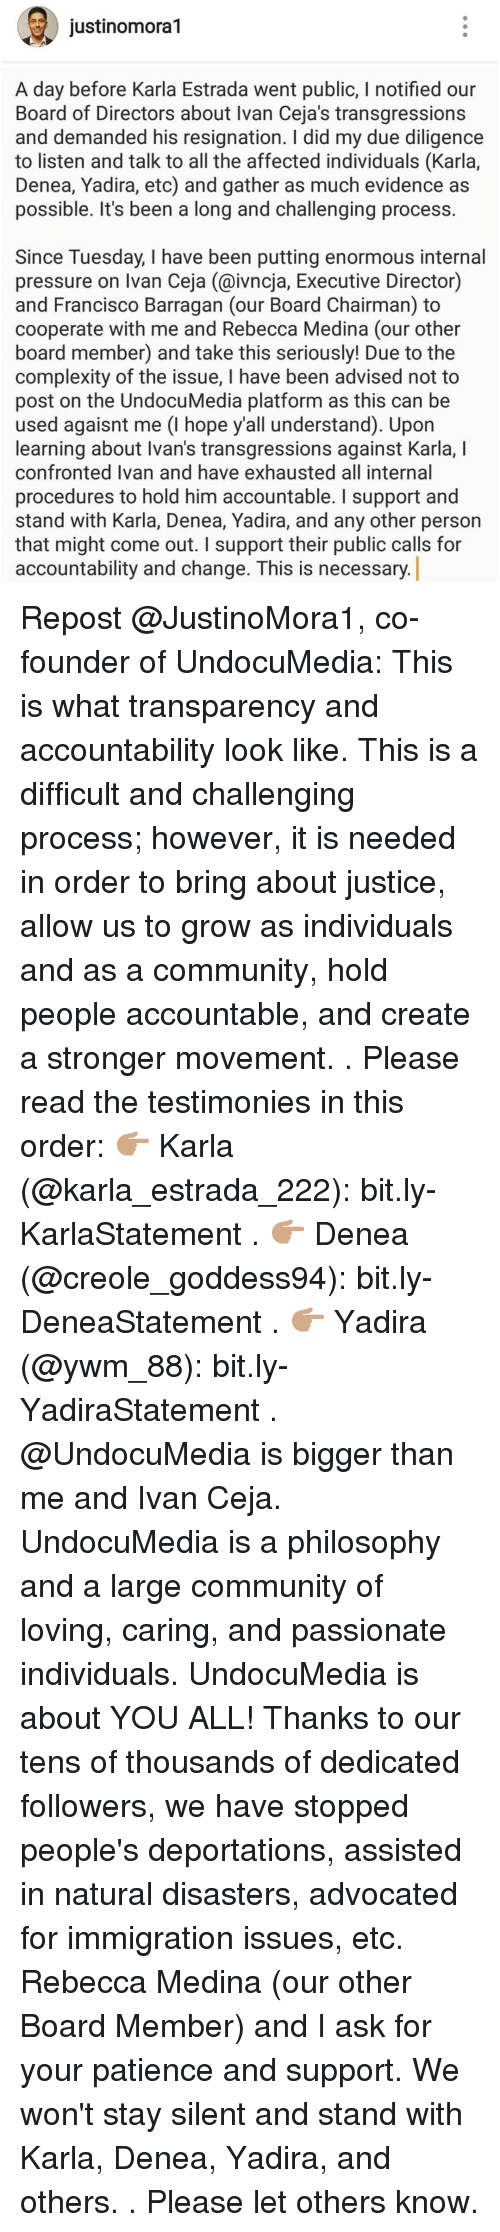 Community, Memes, and Pressure: justinomora1  A day before Karla Estrada went public, I notified our  Board of Directors about Ivan Ceja's transgressions  and demanded his resignation. I did my due diligence  to listen and talk to all the affected individuals (Karla,  Denea, Yadira, etc) and gather as much evidence as  possible. It's been a long and challenging process.  Since Tuesday, I have been putting enormous internal  pressure on Ivan Ceja (@ivncja, Executive Director)  and Francisco Barragan (our Board Chairman) to  cooperate with me and Rebecca Medina (our other  board member) and take this seriously! Due to the  complexity of the issue, I have been advised not to  post on the UndocuMedia platform as this can be  used agaisnt me (I hope y'all understand). Upon  learning about Ivan's transgressions against Karla, I  confronted Ivan and have exhausted all internal  procedures to hold him accountable. I support and  stand with Karla, Denea, Yadira, and any other person  that might come out. I support their public calls for  accountability and change. This is necessary Repost @JustinoMora1, co-founder of UndocuMedia: This is what transparency and accountability look like. This is a difficult and challenging process; however, it is needed in order to bring about justice, allow us to grow as individuals and as a community, hold people accountable, and create a stronger movement. . Please read the testimonies in this order: 👉🏽 Karla (@karla_estrada_222): bit.ly-KarlaStatement . 👉🏽 Denea (@creole_goddess94): bit.ly-DeneaStatement . 👉🏽 Yadira (@ywm_88): bit.ly-YadiraStatement . @UndocuMedia is bigger than me and Ivan Ceja. UndocuMedia is a philosophy and a large community of loving, caring, and passionate individuals. UndocuMedia is about YOU ALL! Thanks to our tens of thousands of dedicated followers, we have stopped people's deportations, assisted in natural disasters, advocated for immigration issues, etc. Rebecca Medina (our other Board Member) and I ask for your